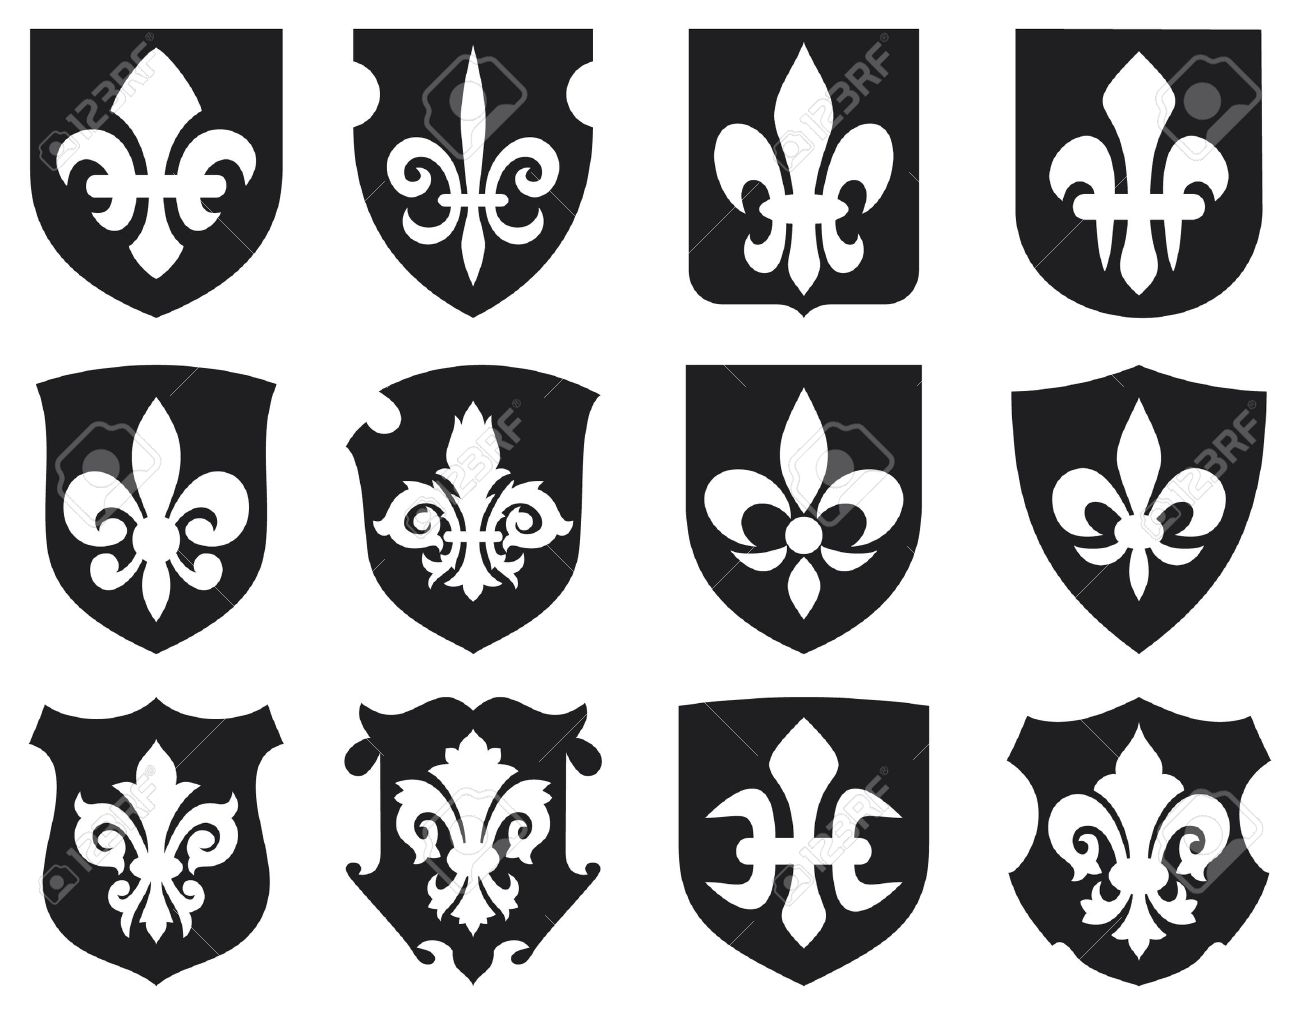 Lily flower heraldic symbol fleur de lis and medieval shields lily flower heraldic symbol fleur de lis and medieval shields royal french lily symbols for biocorpaavc Gallery